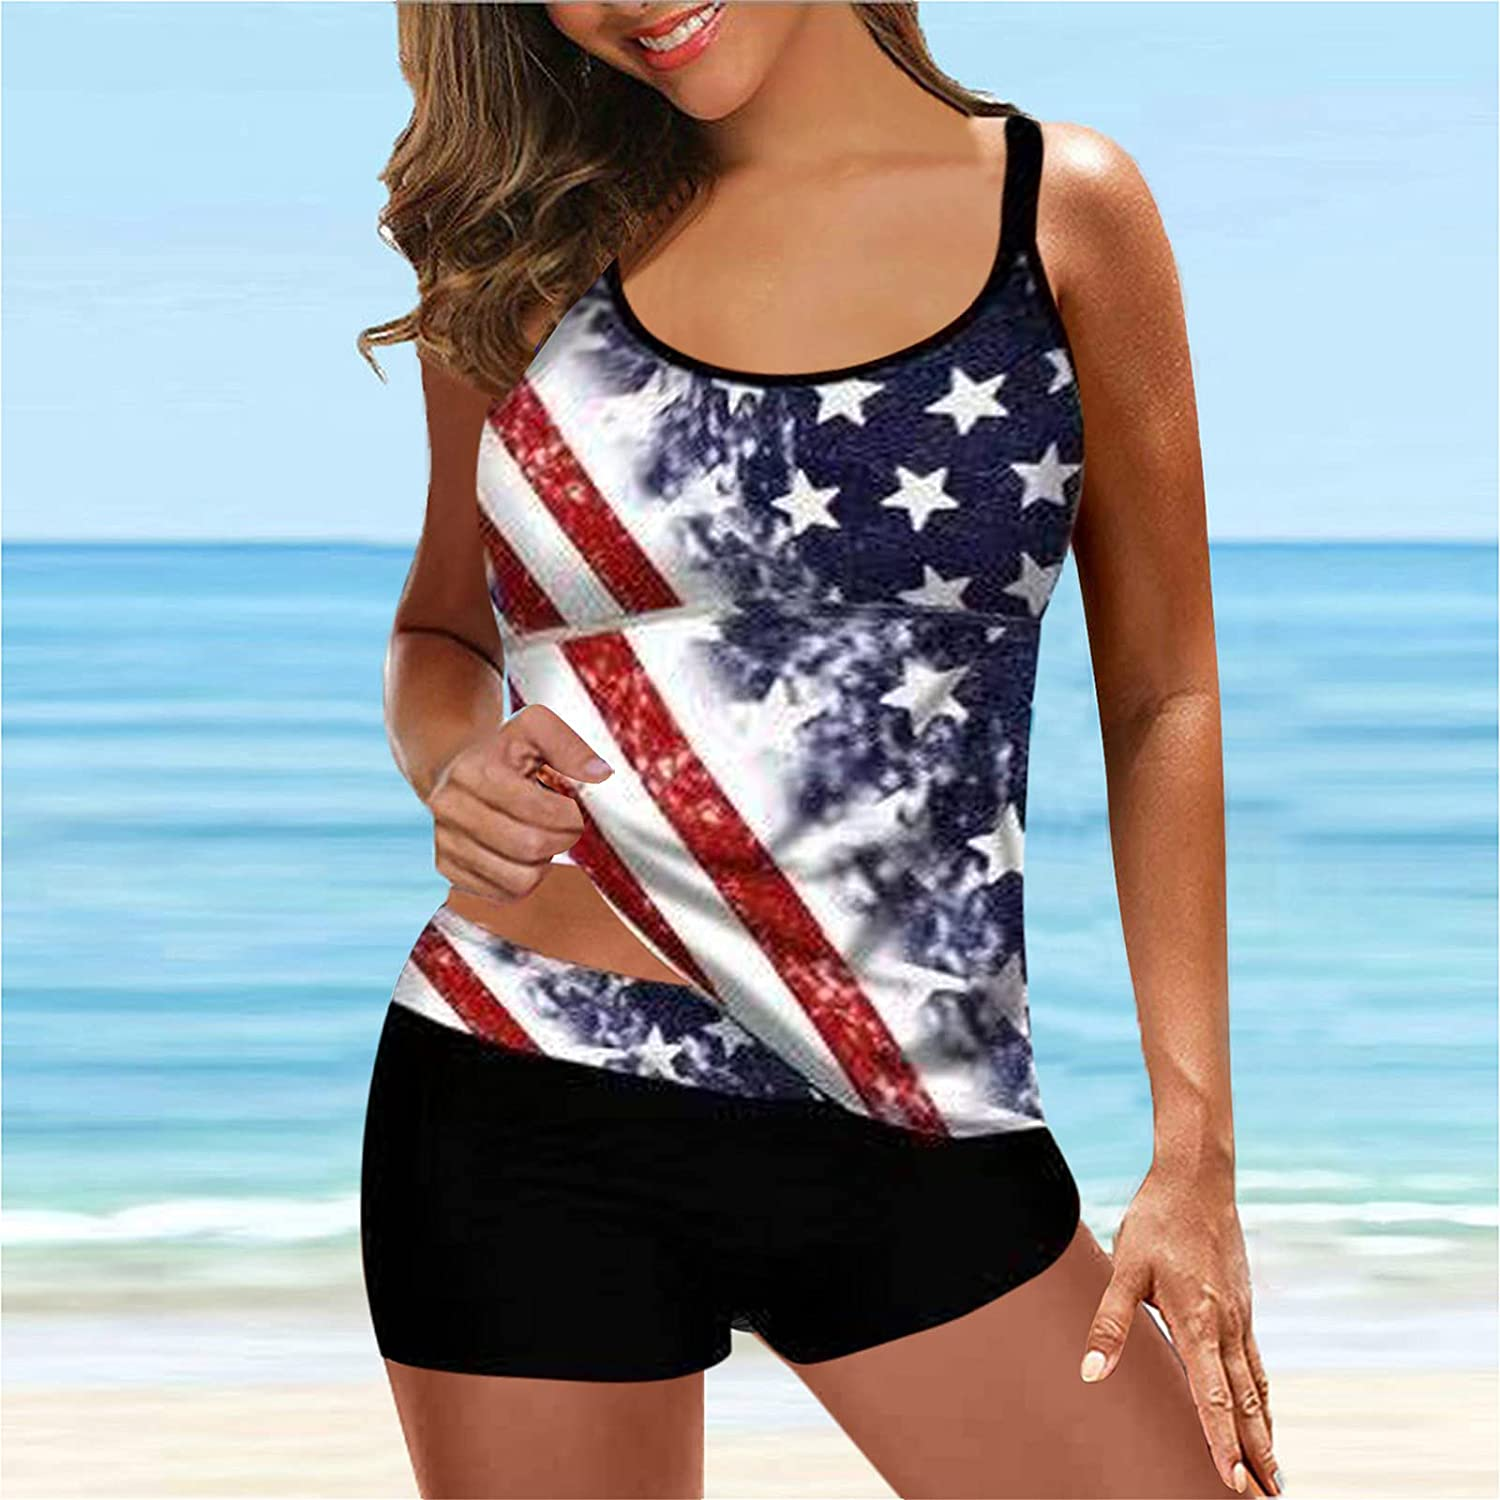 JINRS Womens Plus Size Blouson Tankini Tops with Two Piece Bathing Suits Trends Swimsuits High Waisted Bathing Suits